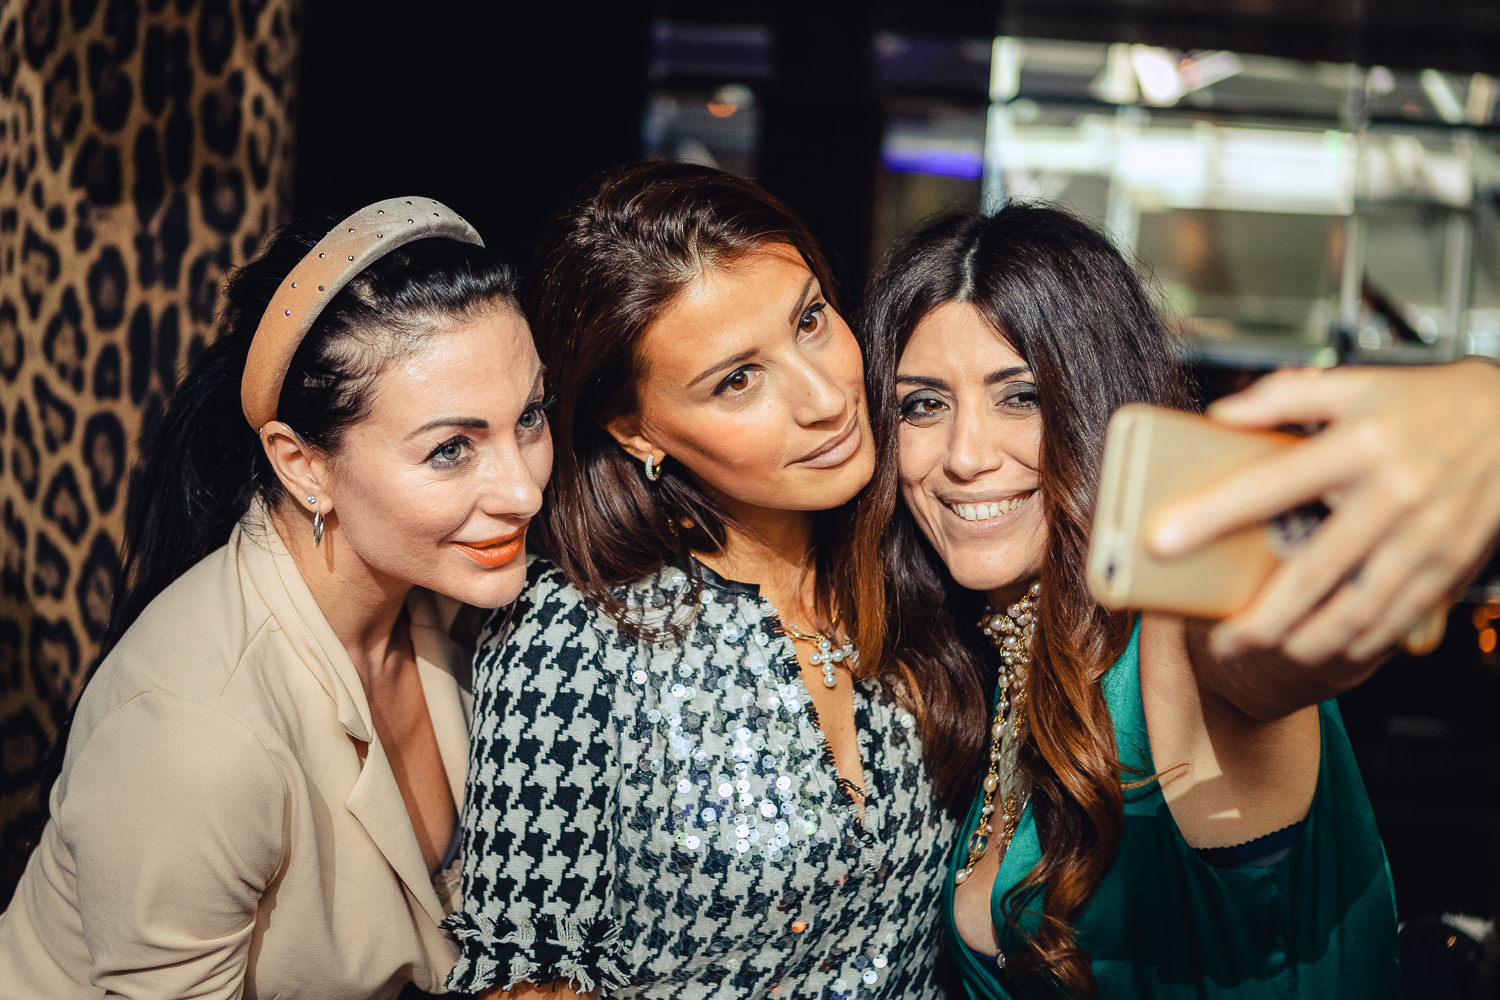 Party Fashion blogger italiane -Katia Ferrante